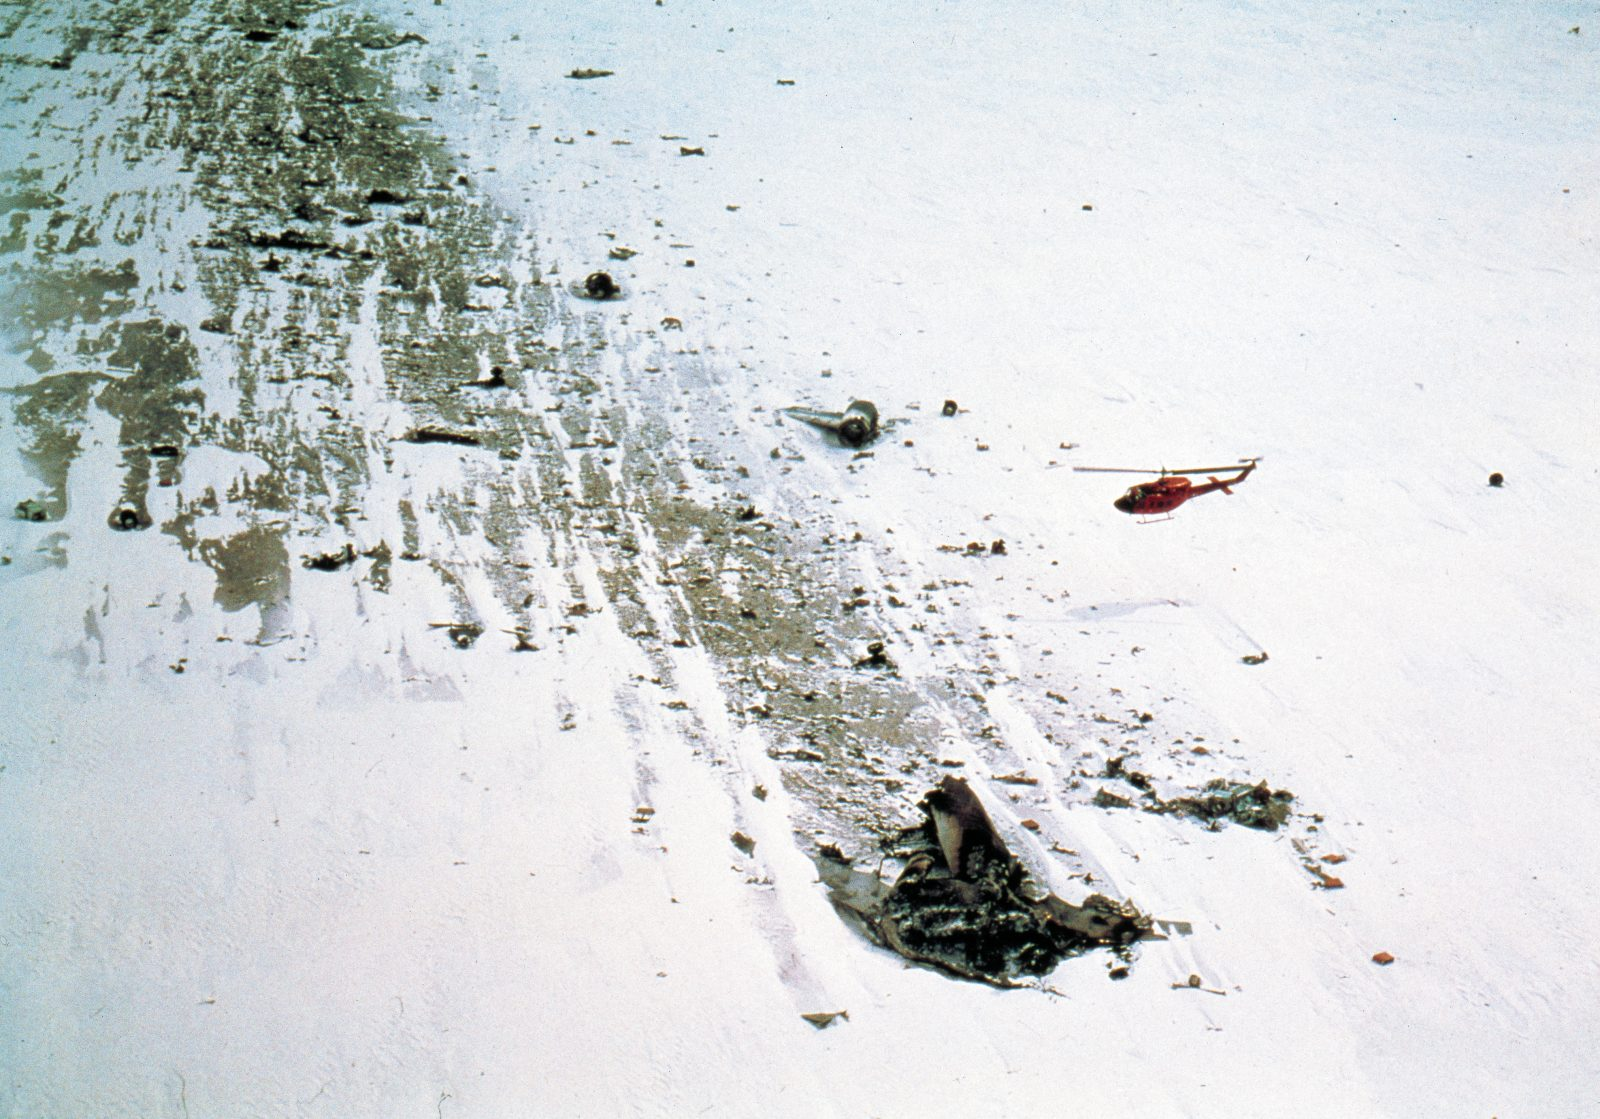 A US Navy helicopter flies over the wreckage soon after its discovery. The crash point is at the upper left. The force of the impact, which rendered much of the wide-bodied DC10 unrecognisable, opened crevasses on the sloping ground, adding to the dangers for the recovery team.